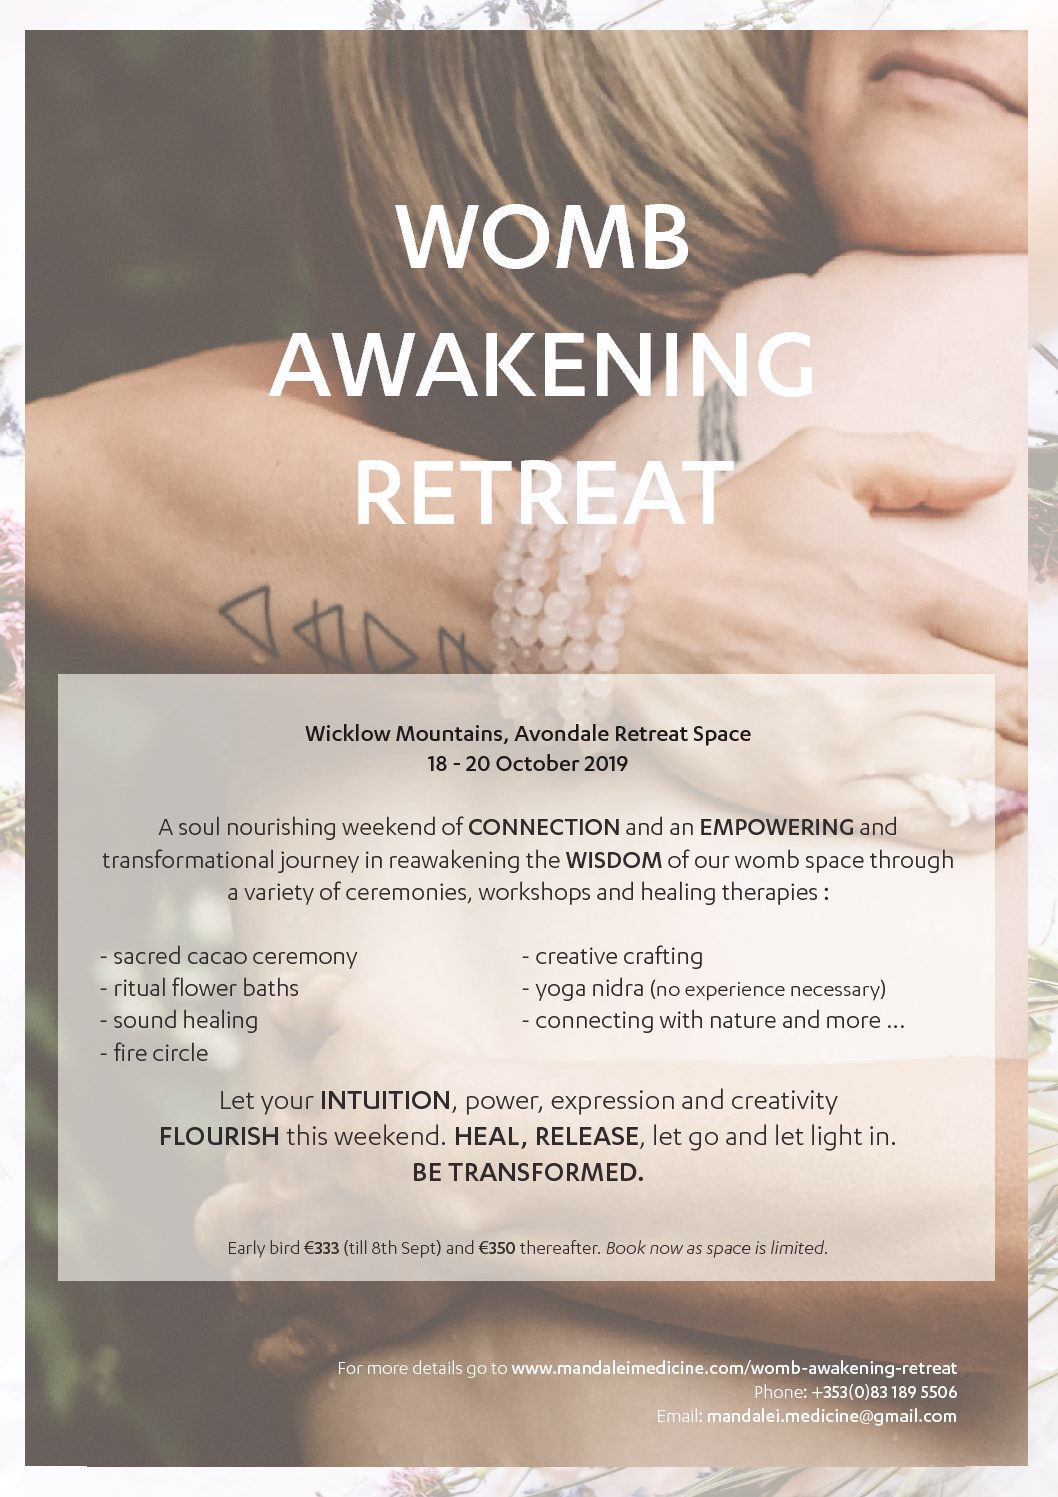 Womb Awakening Retreat - 18-20th October 2019